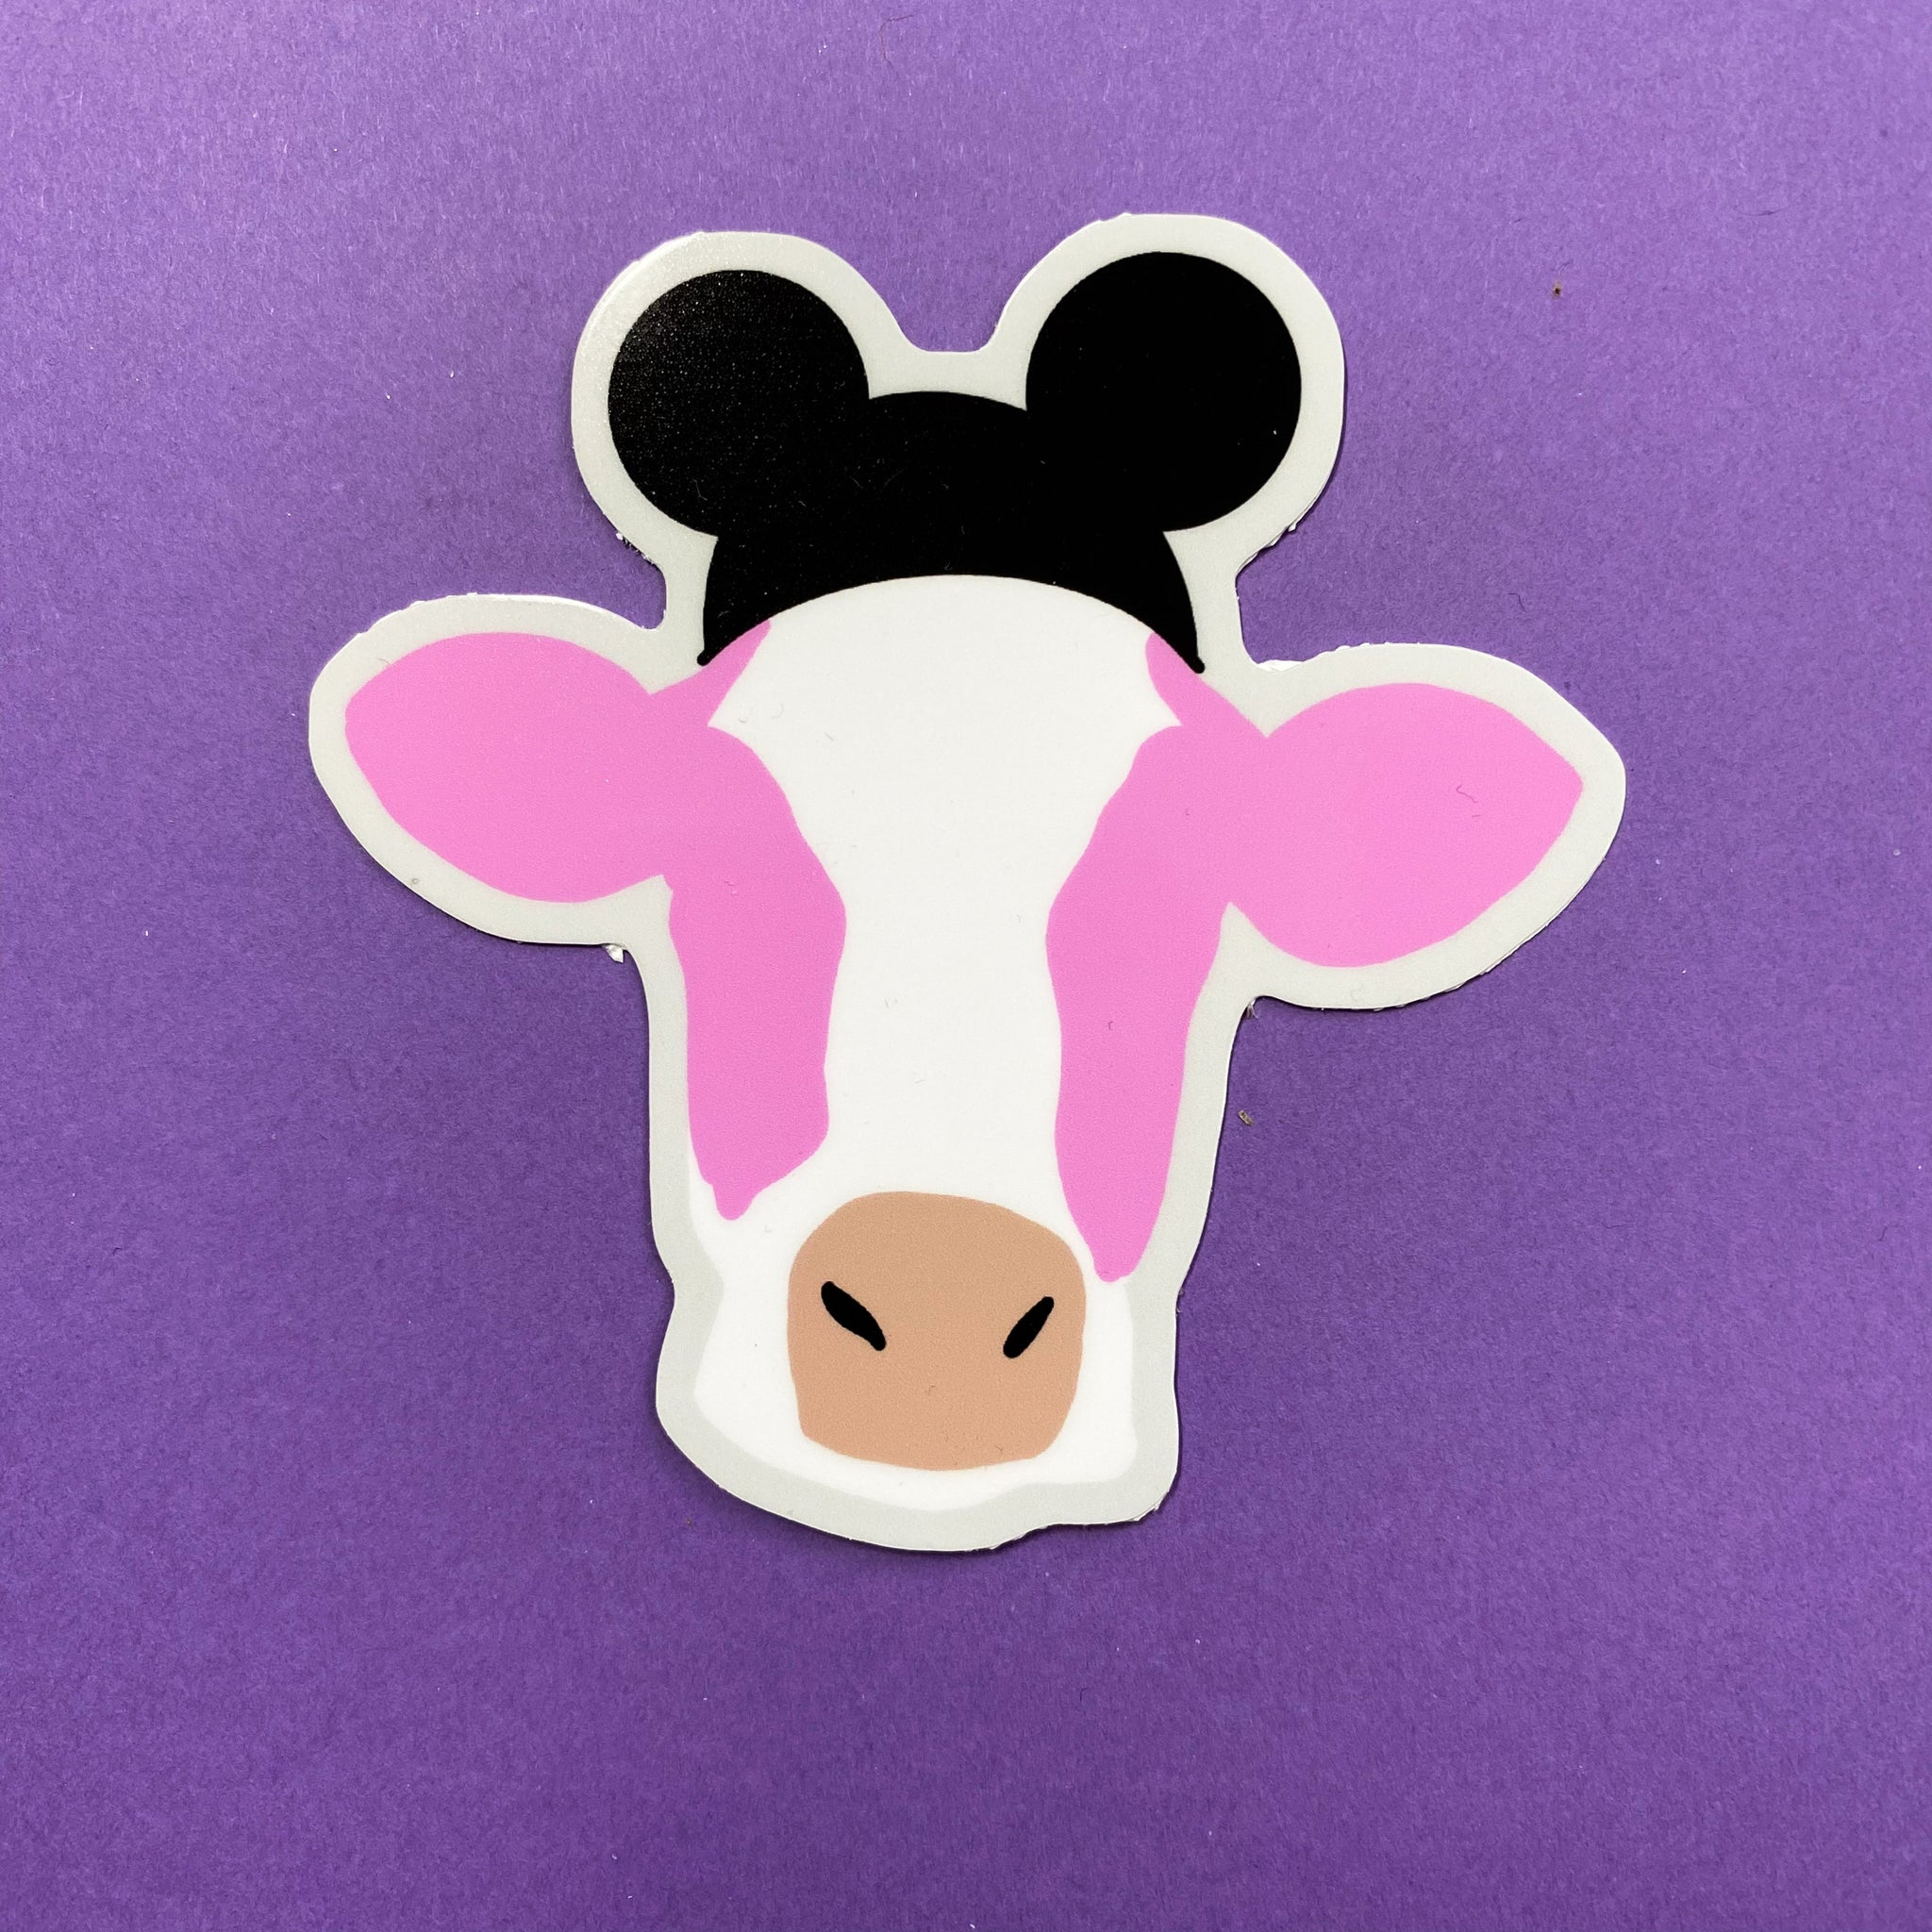 Strawberry Cow with Ears Sticker